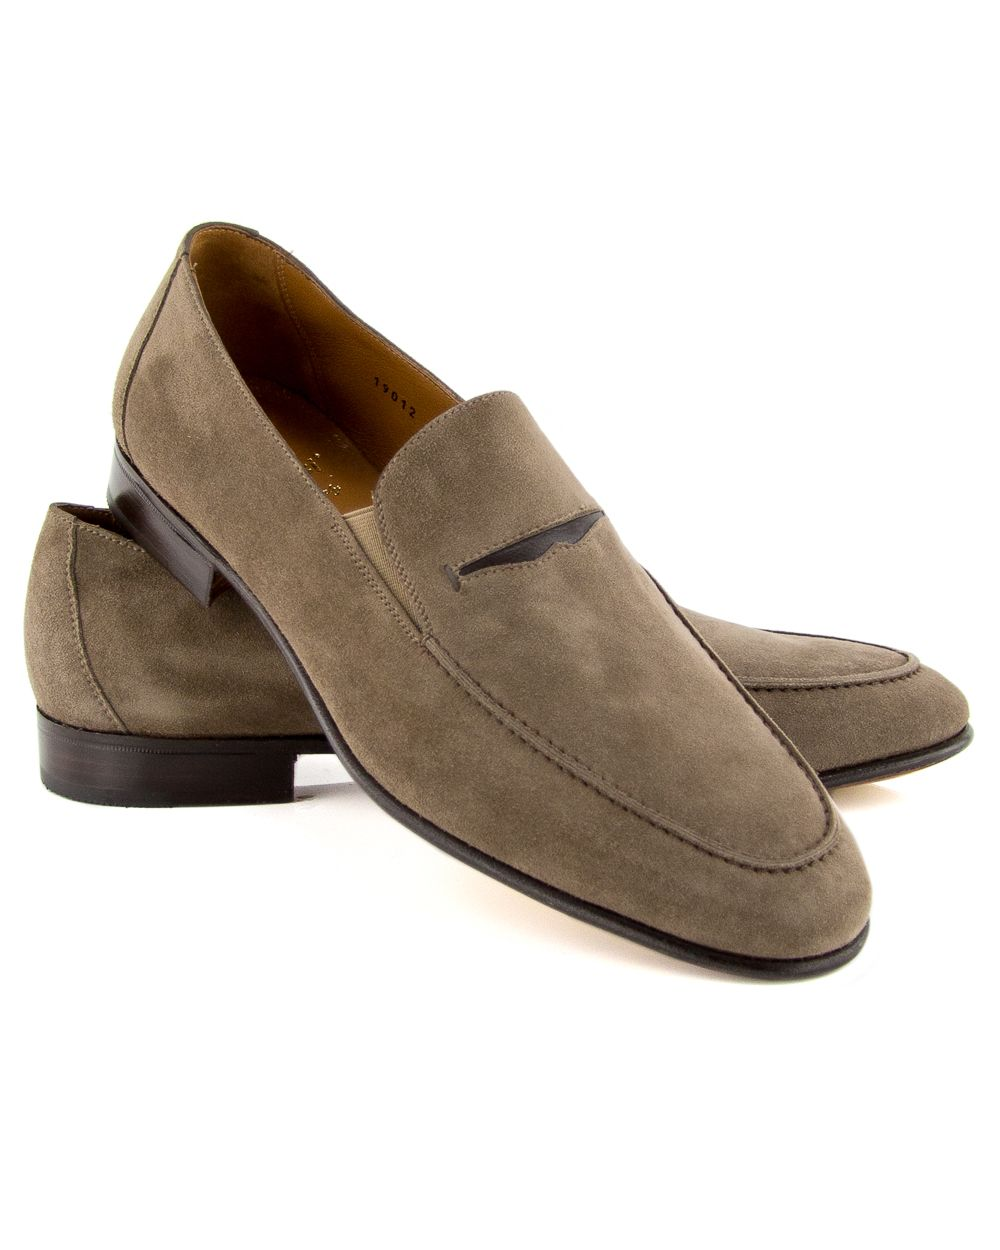 172cea67450  438 Gravati Taupe Double Gore Suede Leather Penny Loafer Suede leather  upper Traditional penny keeper slot